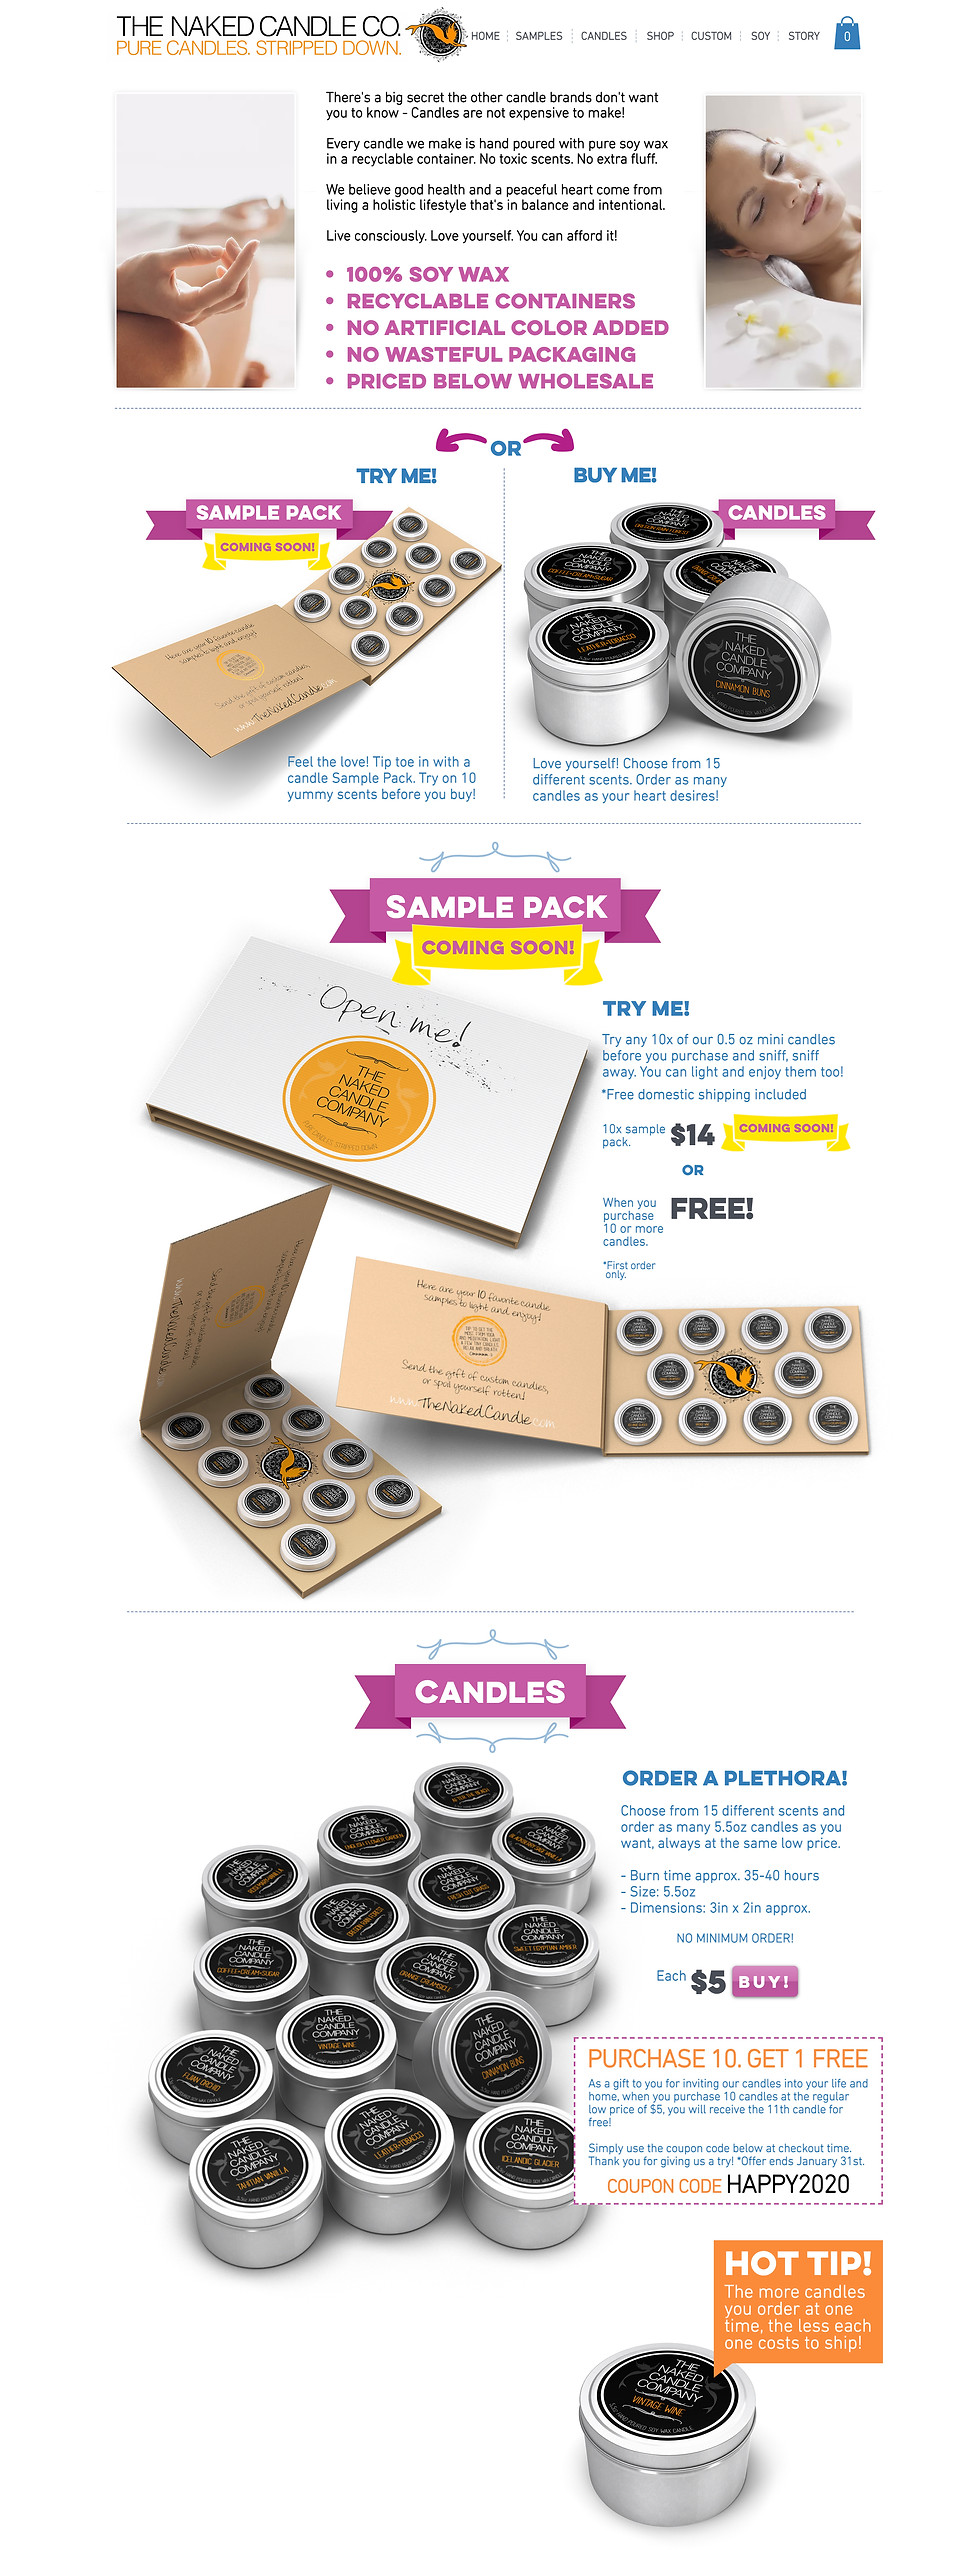 Naked-Candle-Home-Page.jpg